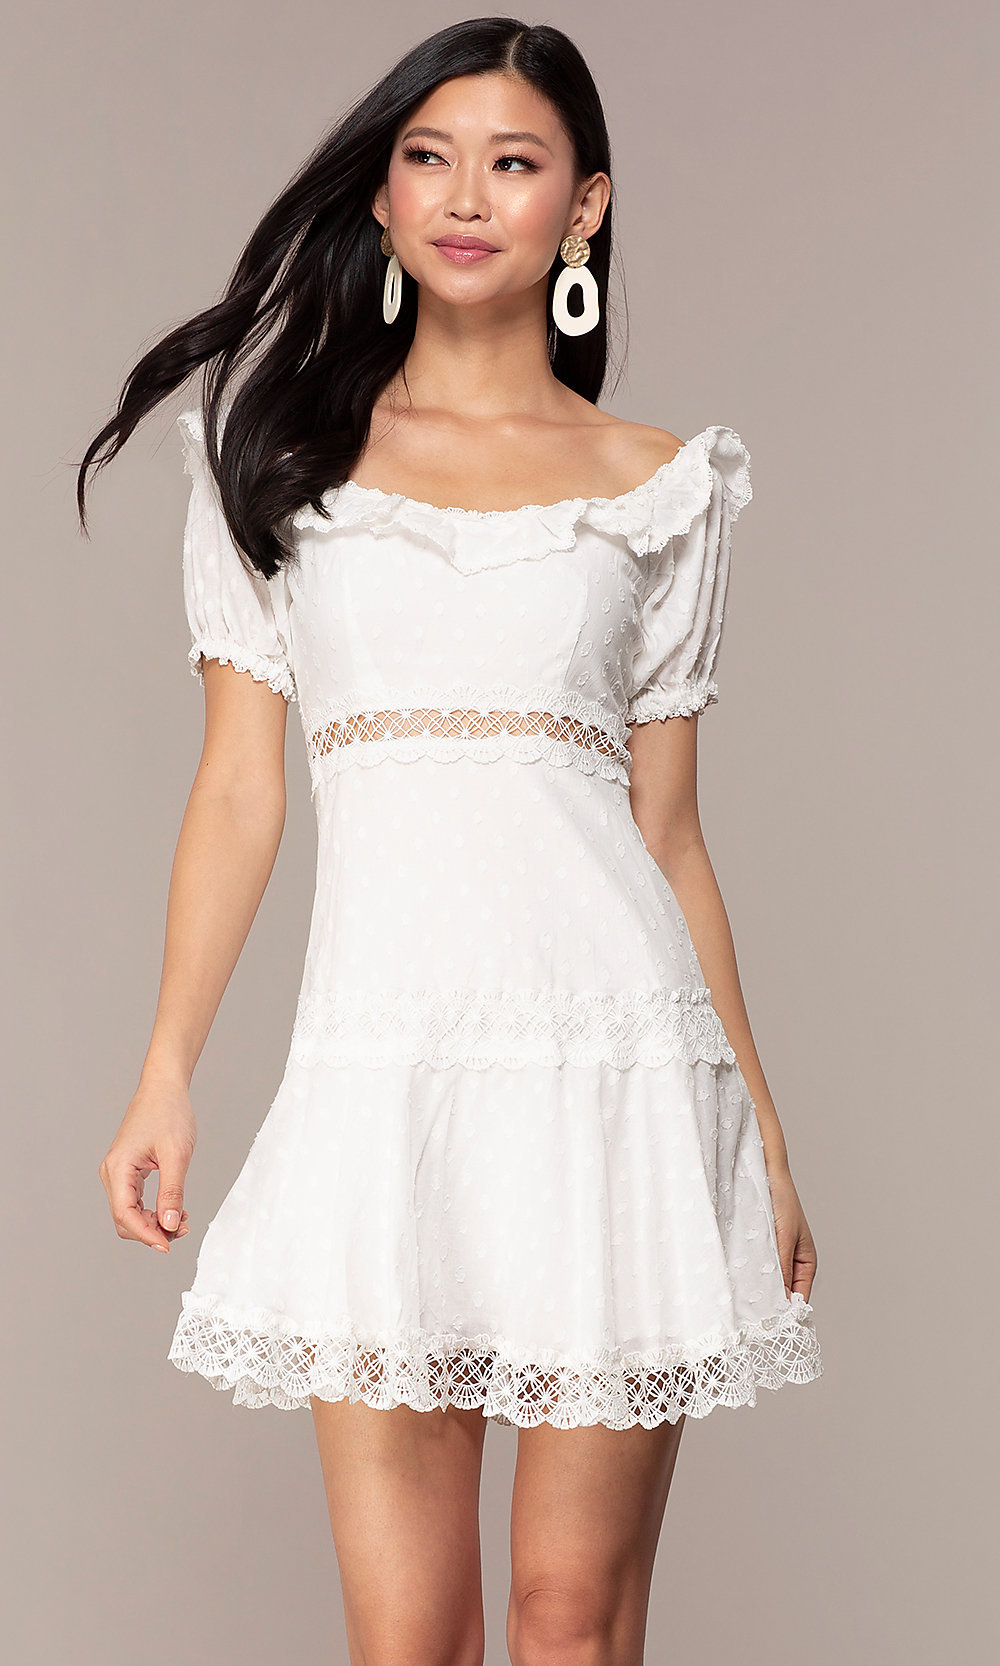 White Dress with Puffy Sleeves